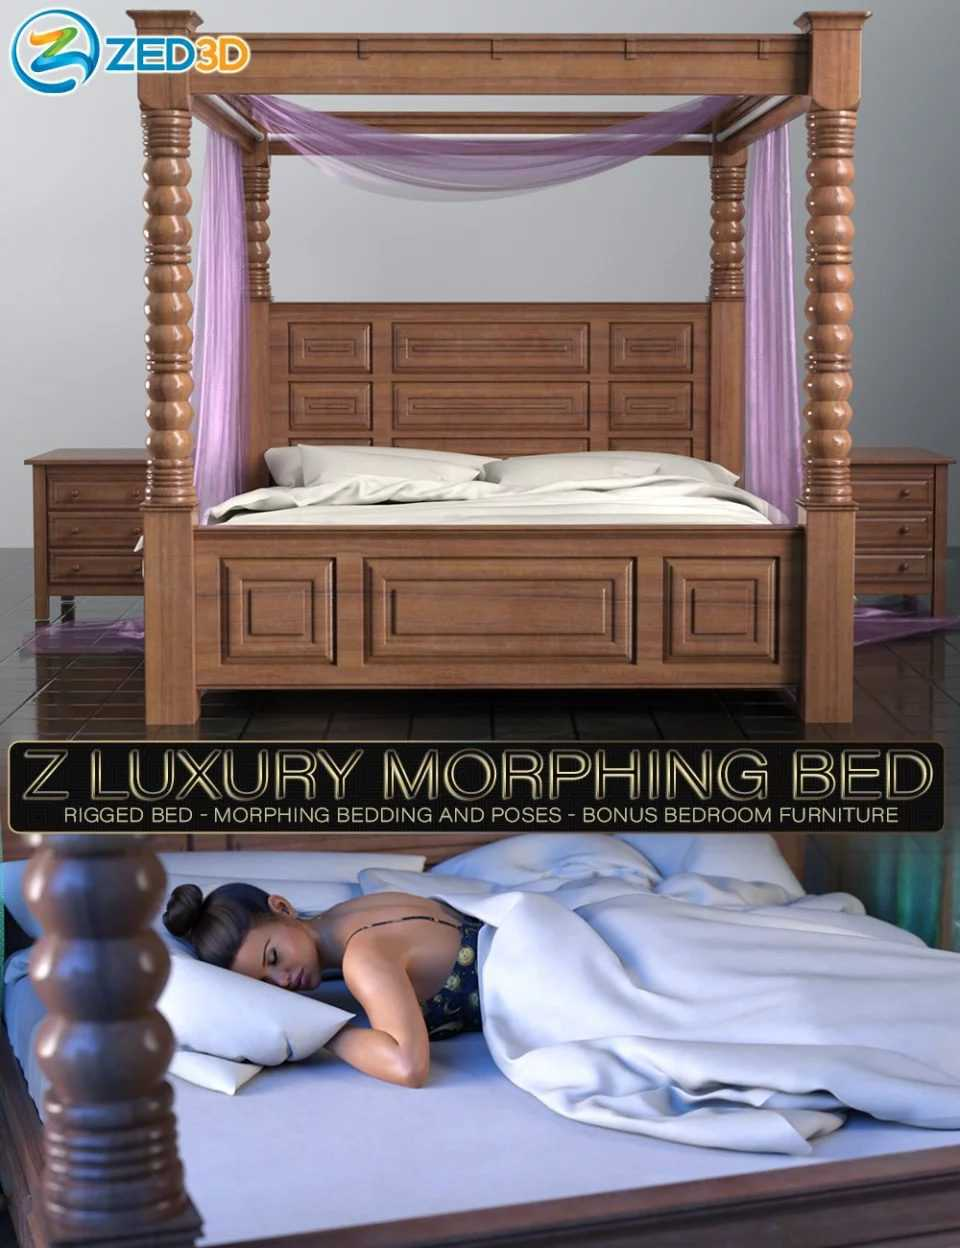 Z Luxury Morphing Bed and Poses